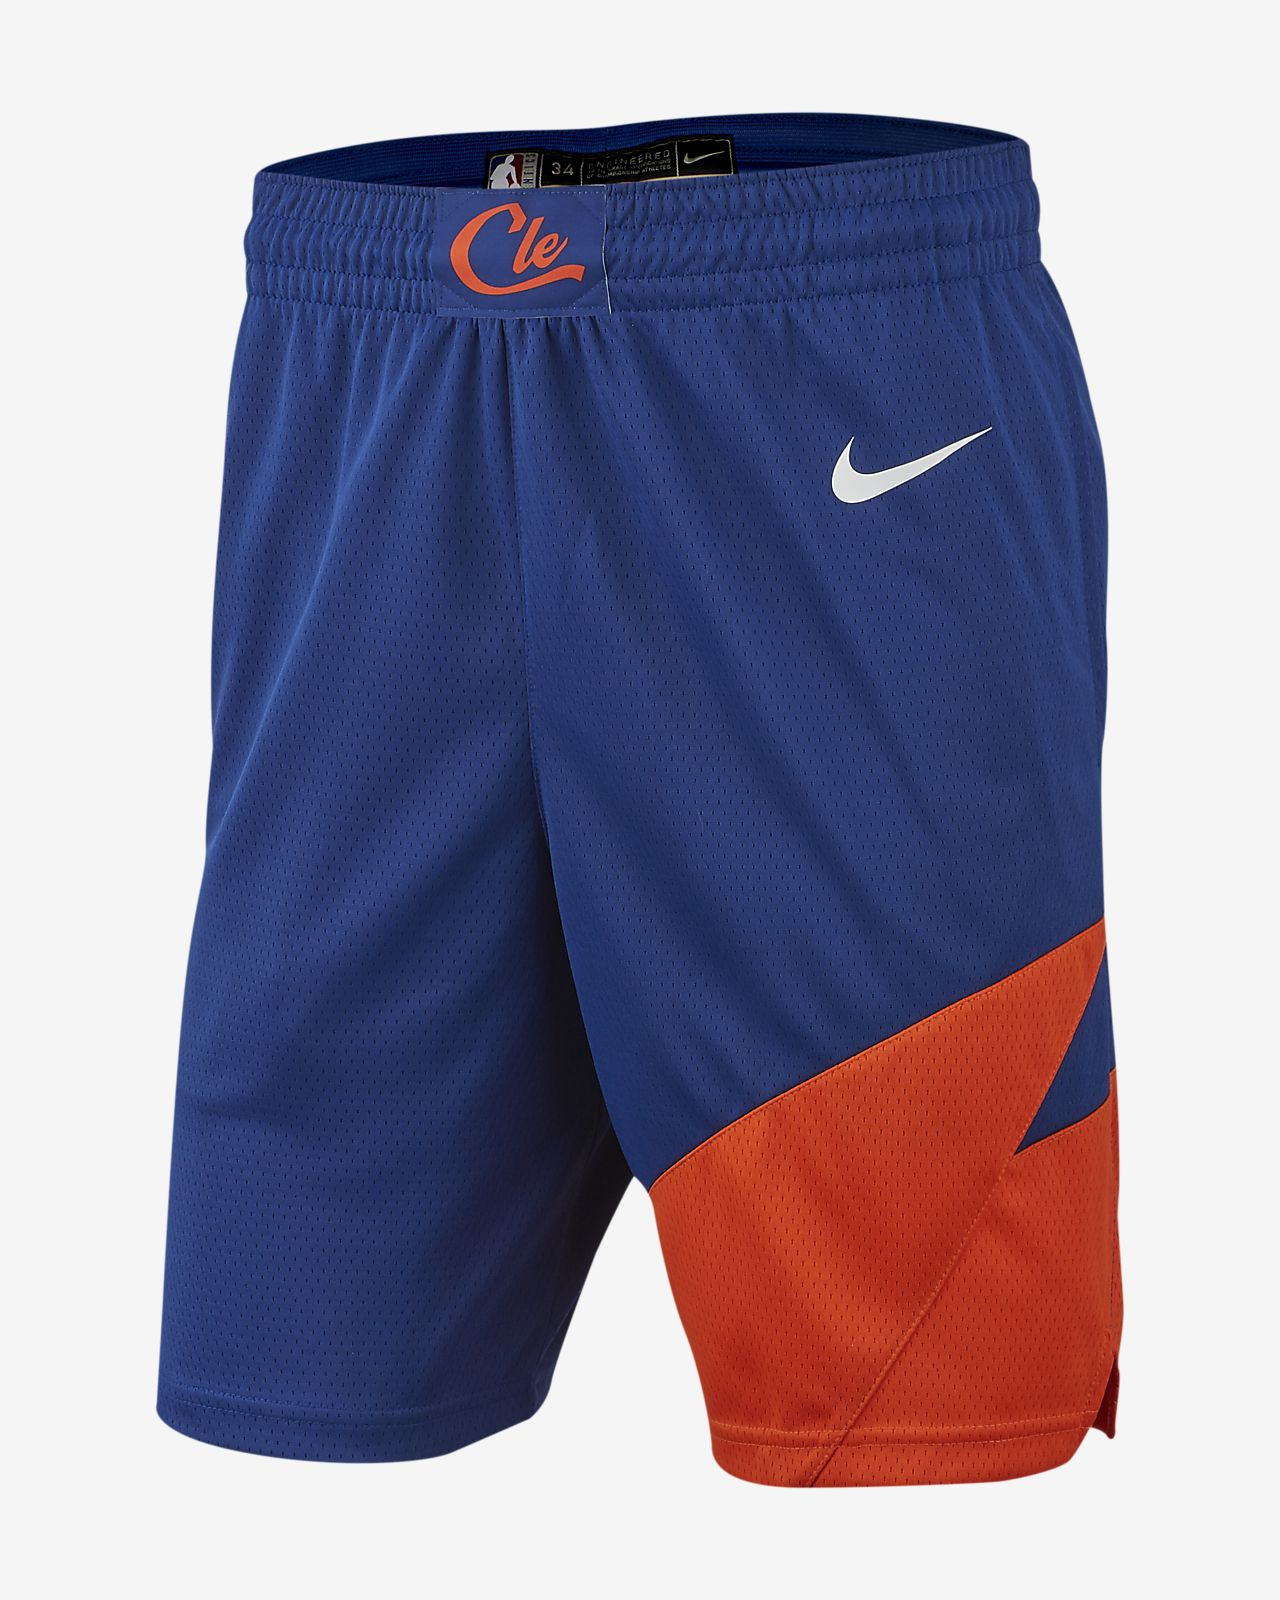 Cleveland Cavaliers City Edition Swingman Pantalons curts Nike NBA - Home